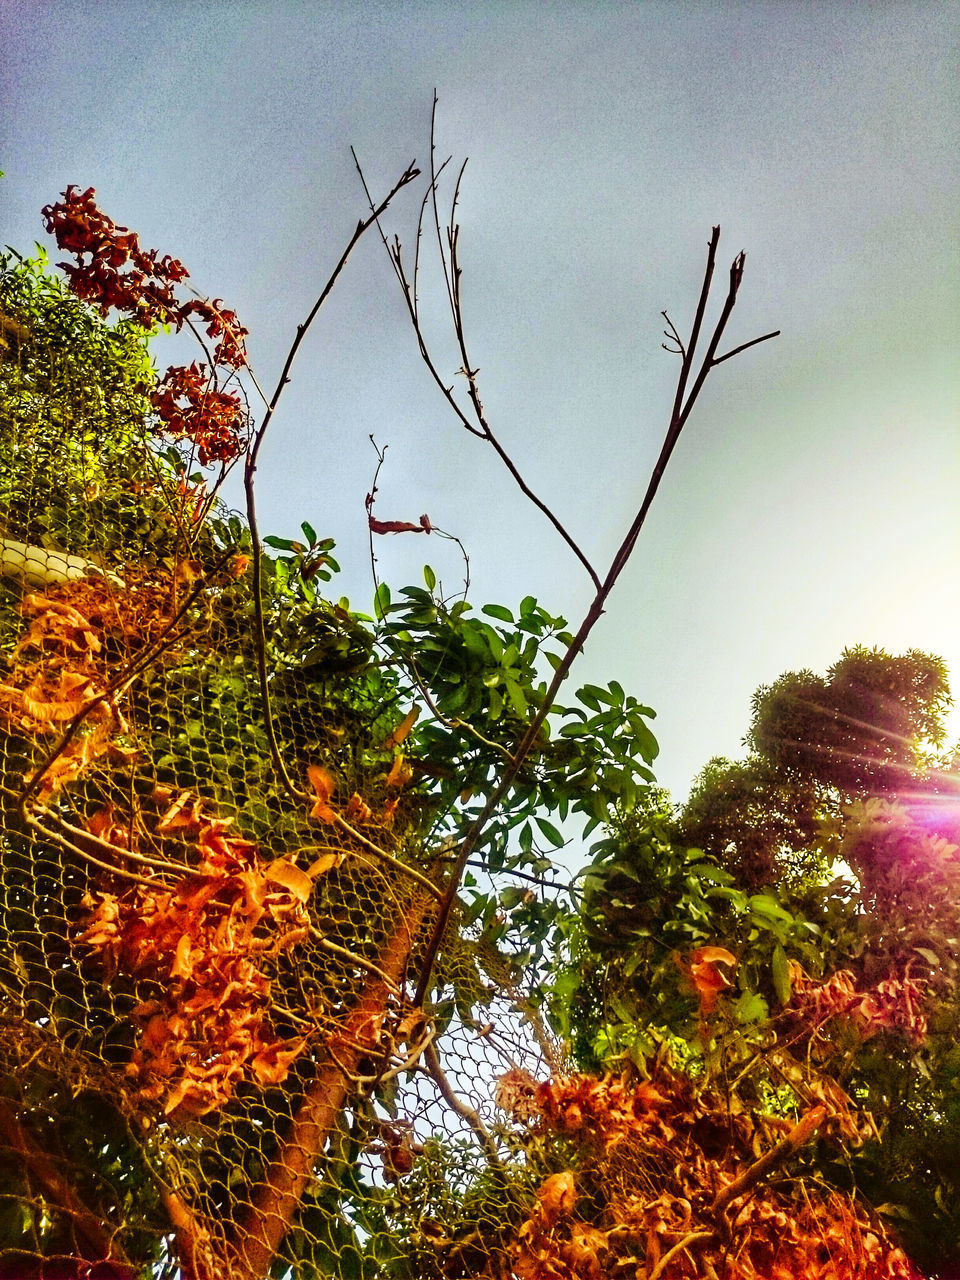 tree, growth, nature, sky, low angle view, beauty in nature, no people, outdoors, sunset, fruit, day, branch, freshness, close-up